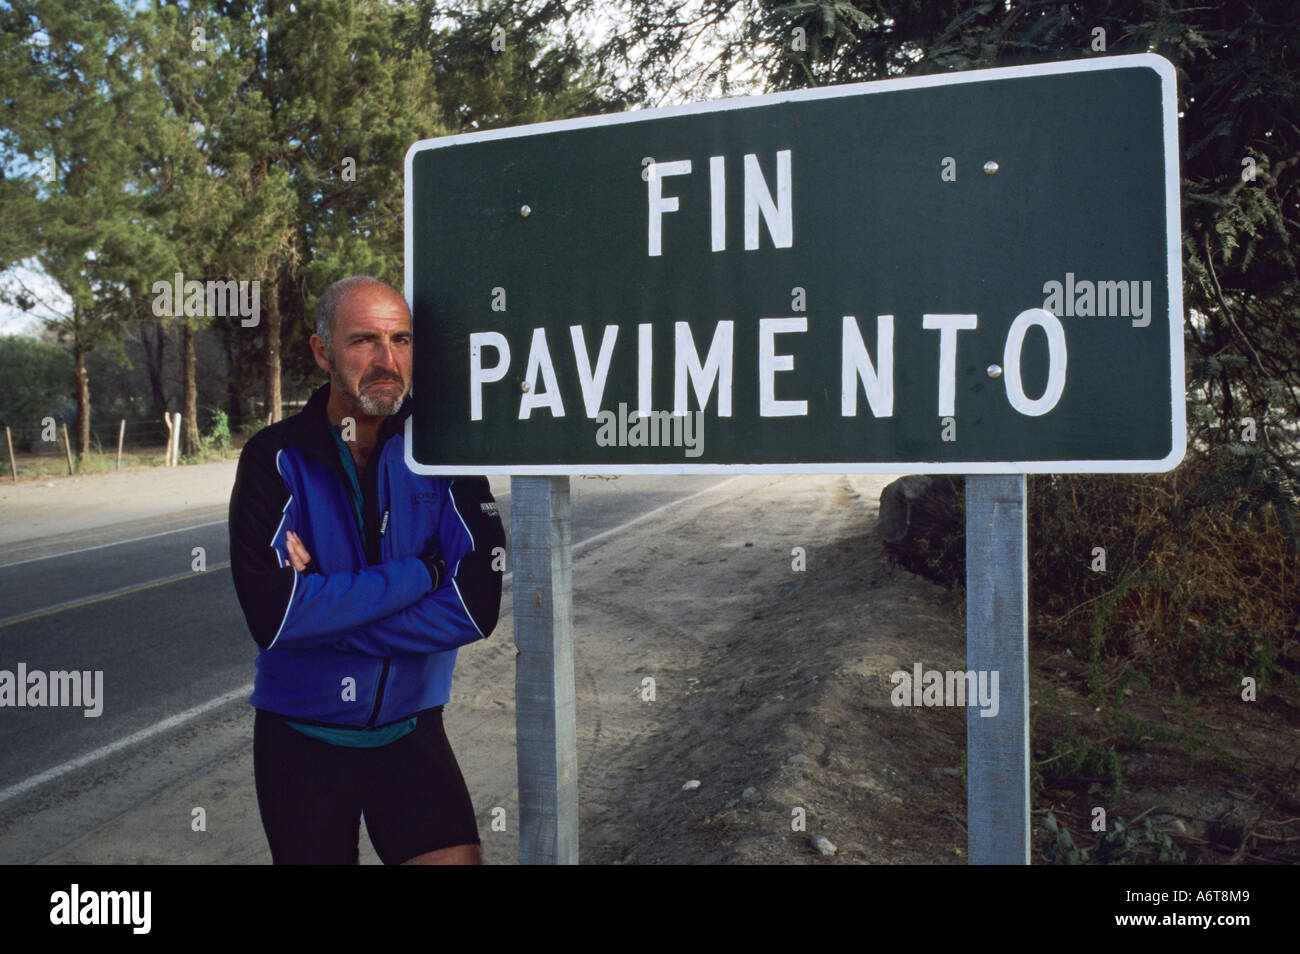 Unhappy male cyclist next to Fin Pavimento end of Tarmac sign in Argentina Stock Photo